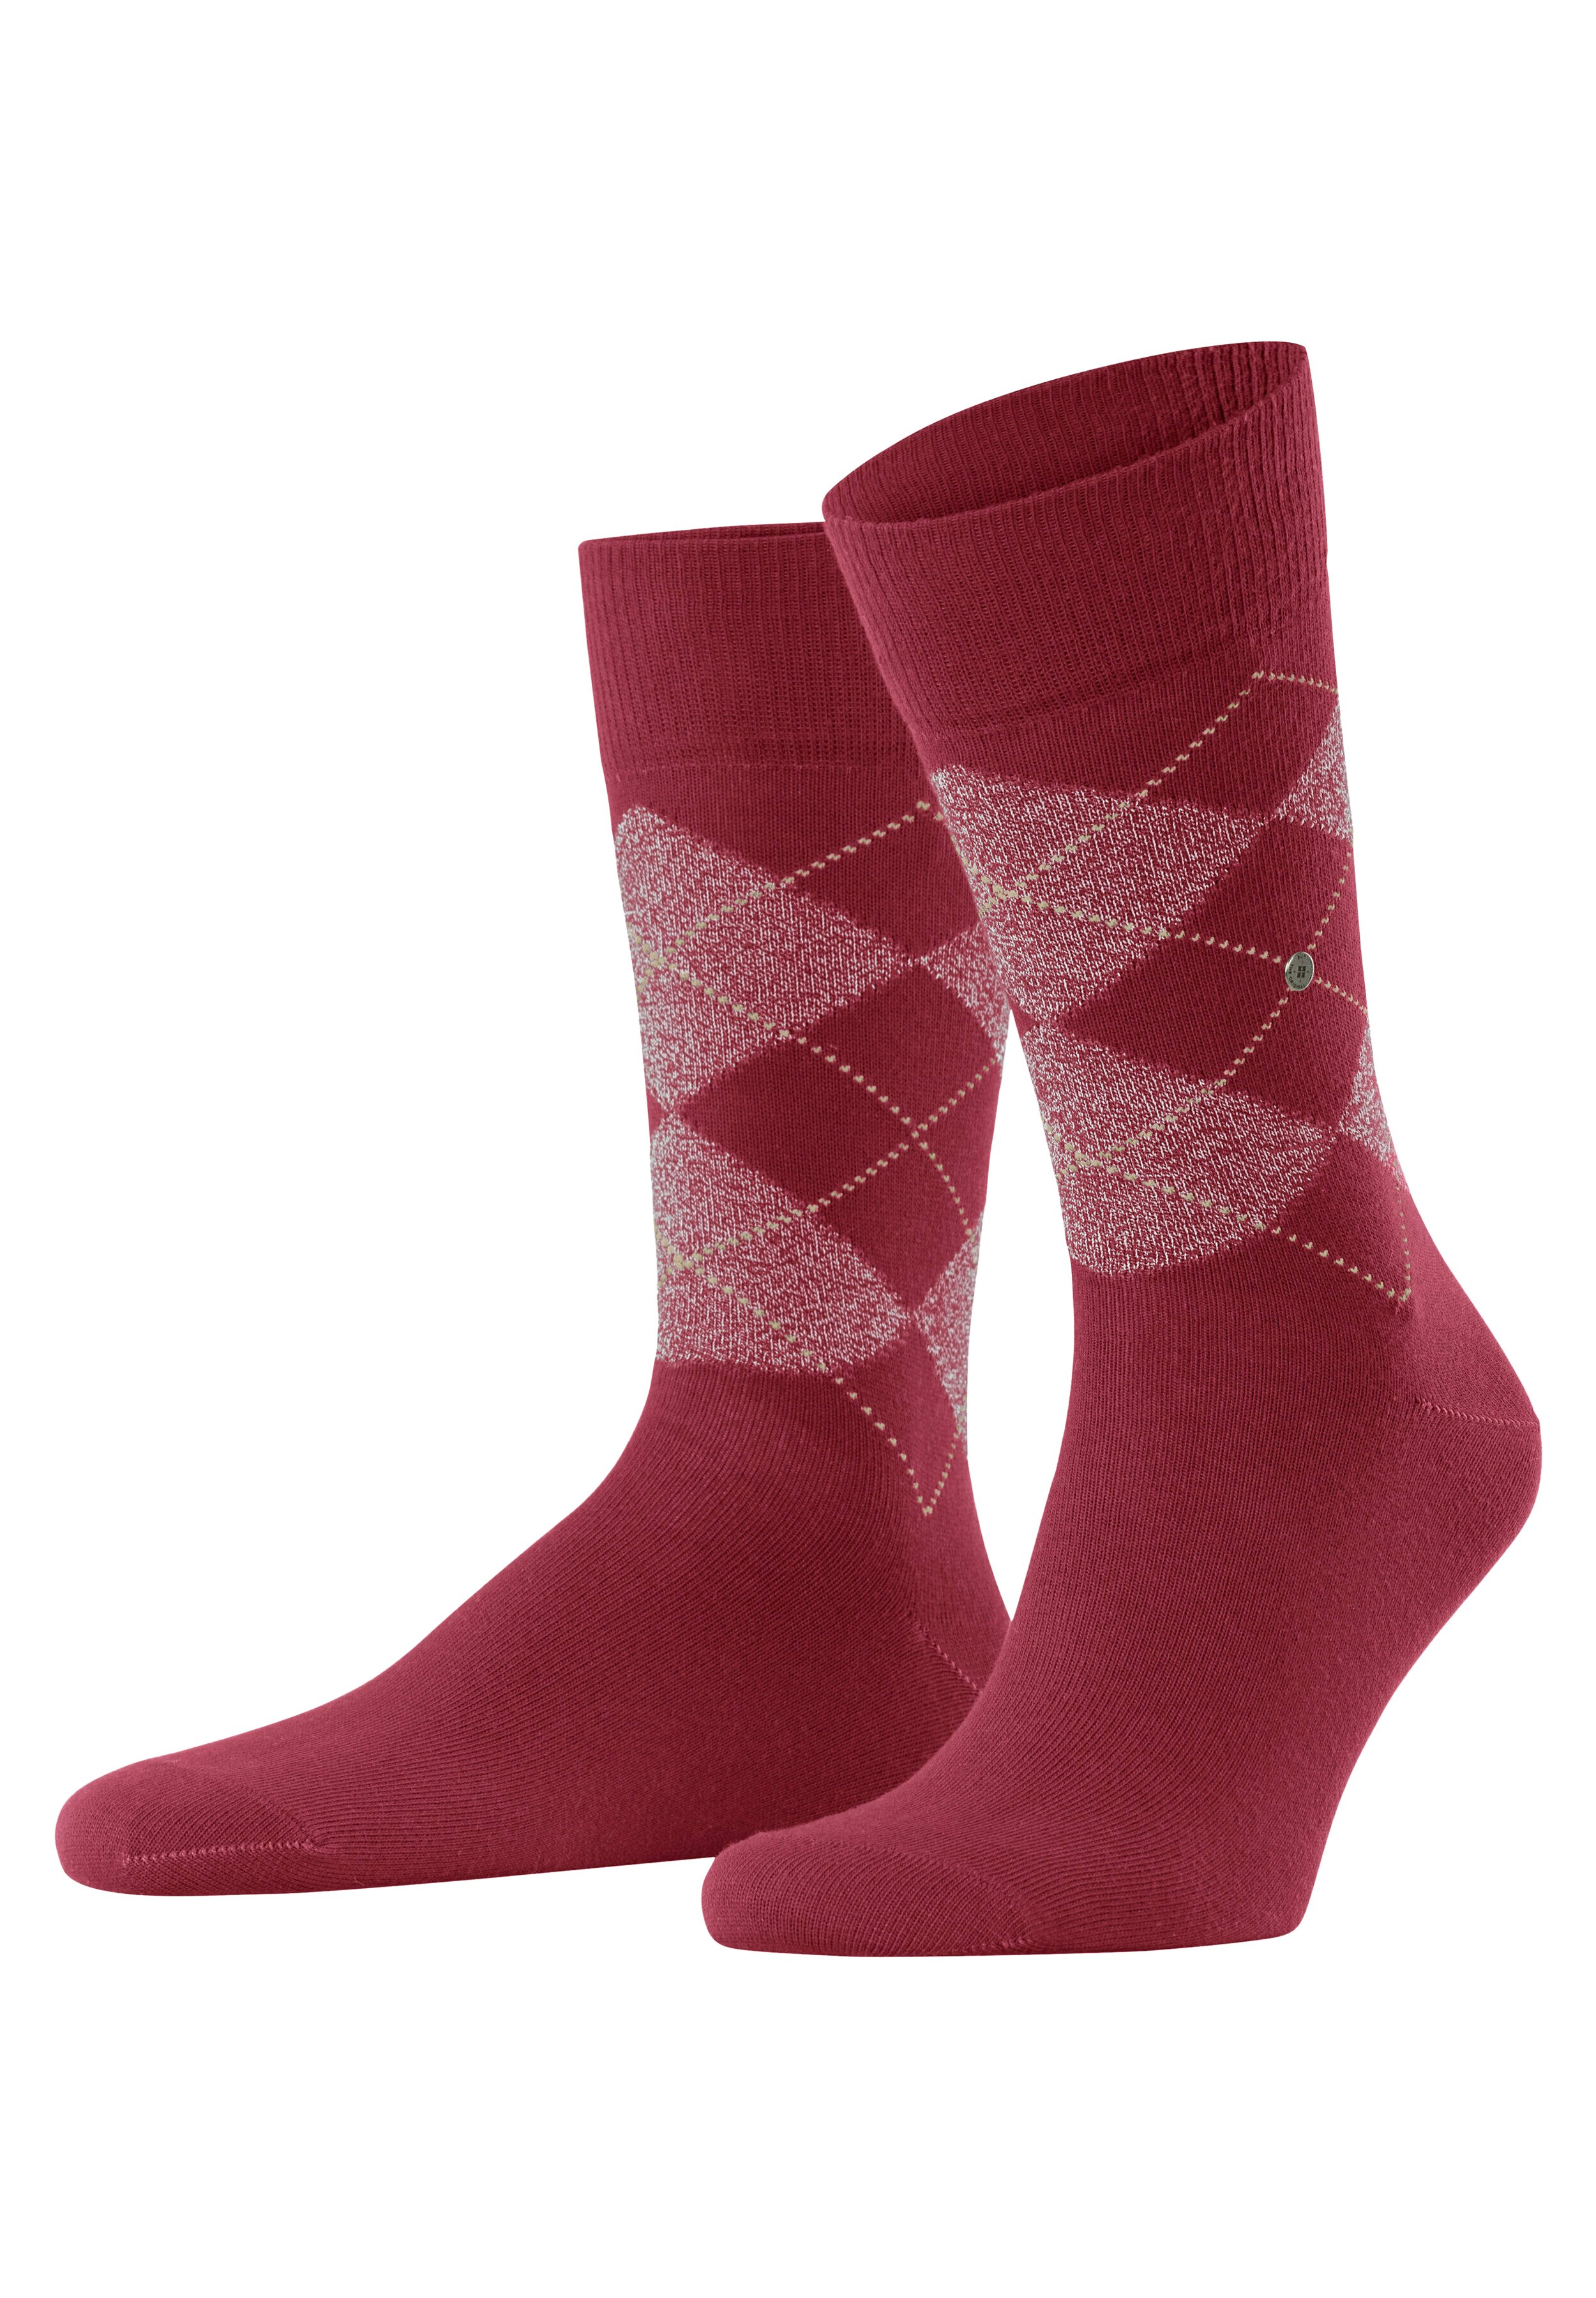 Homme BIRMINGHAM - Chaussettes - cherry red